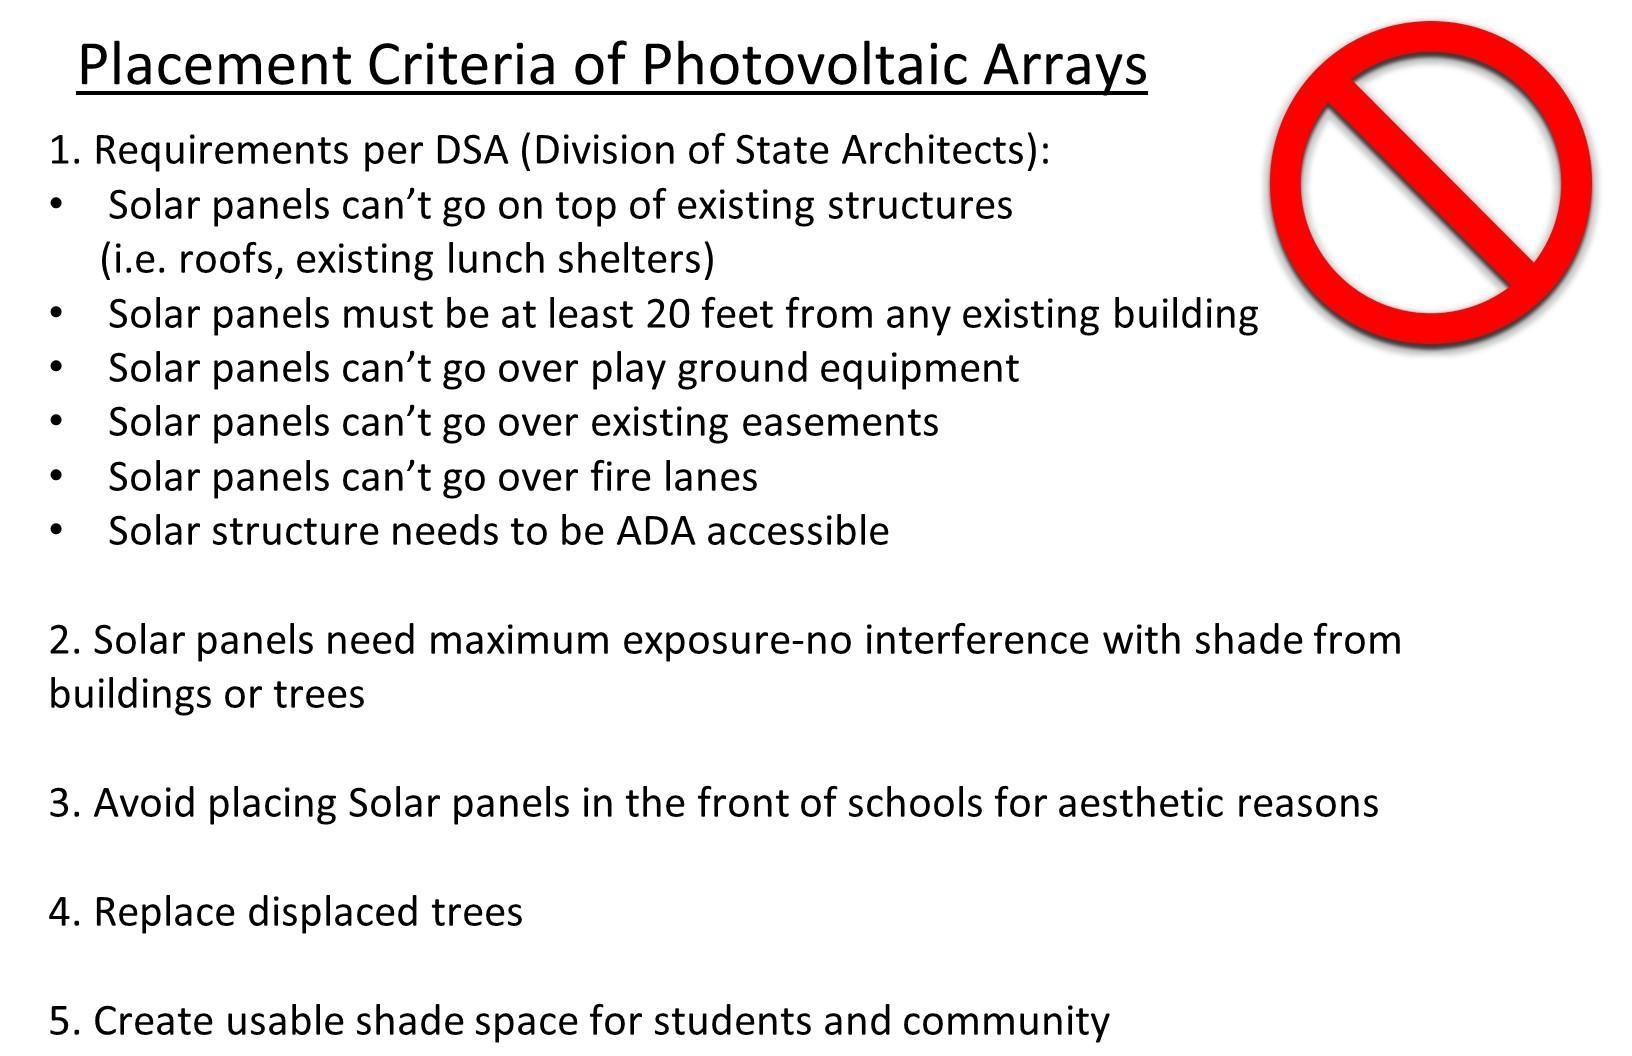 Placement Criteria of Photovoltaic Arrays